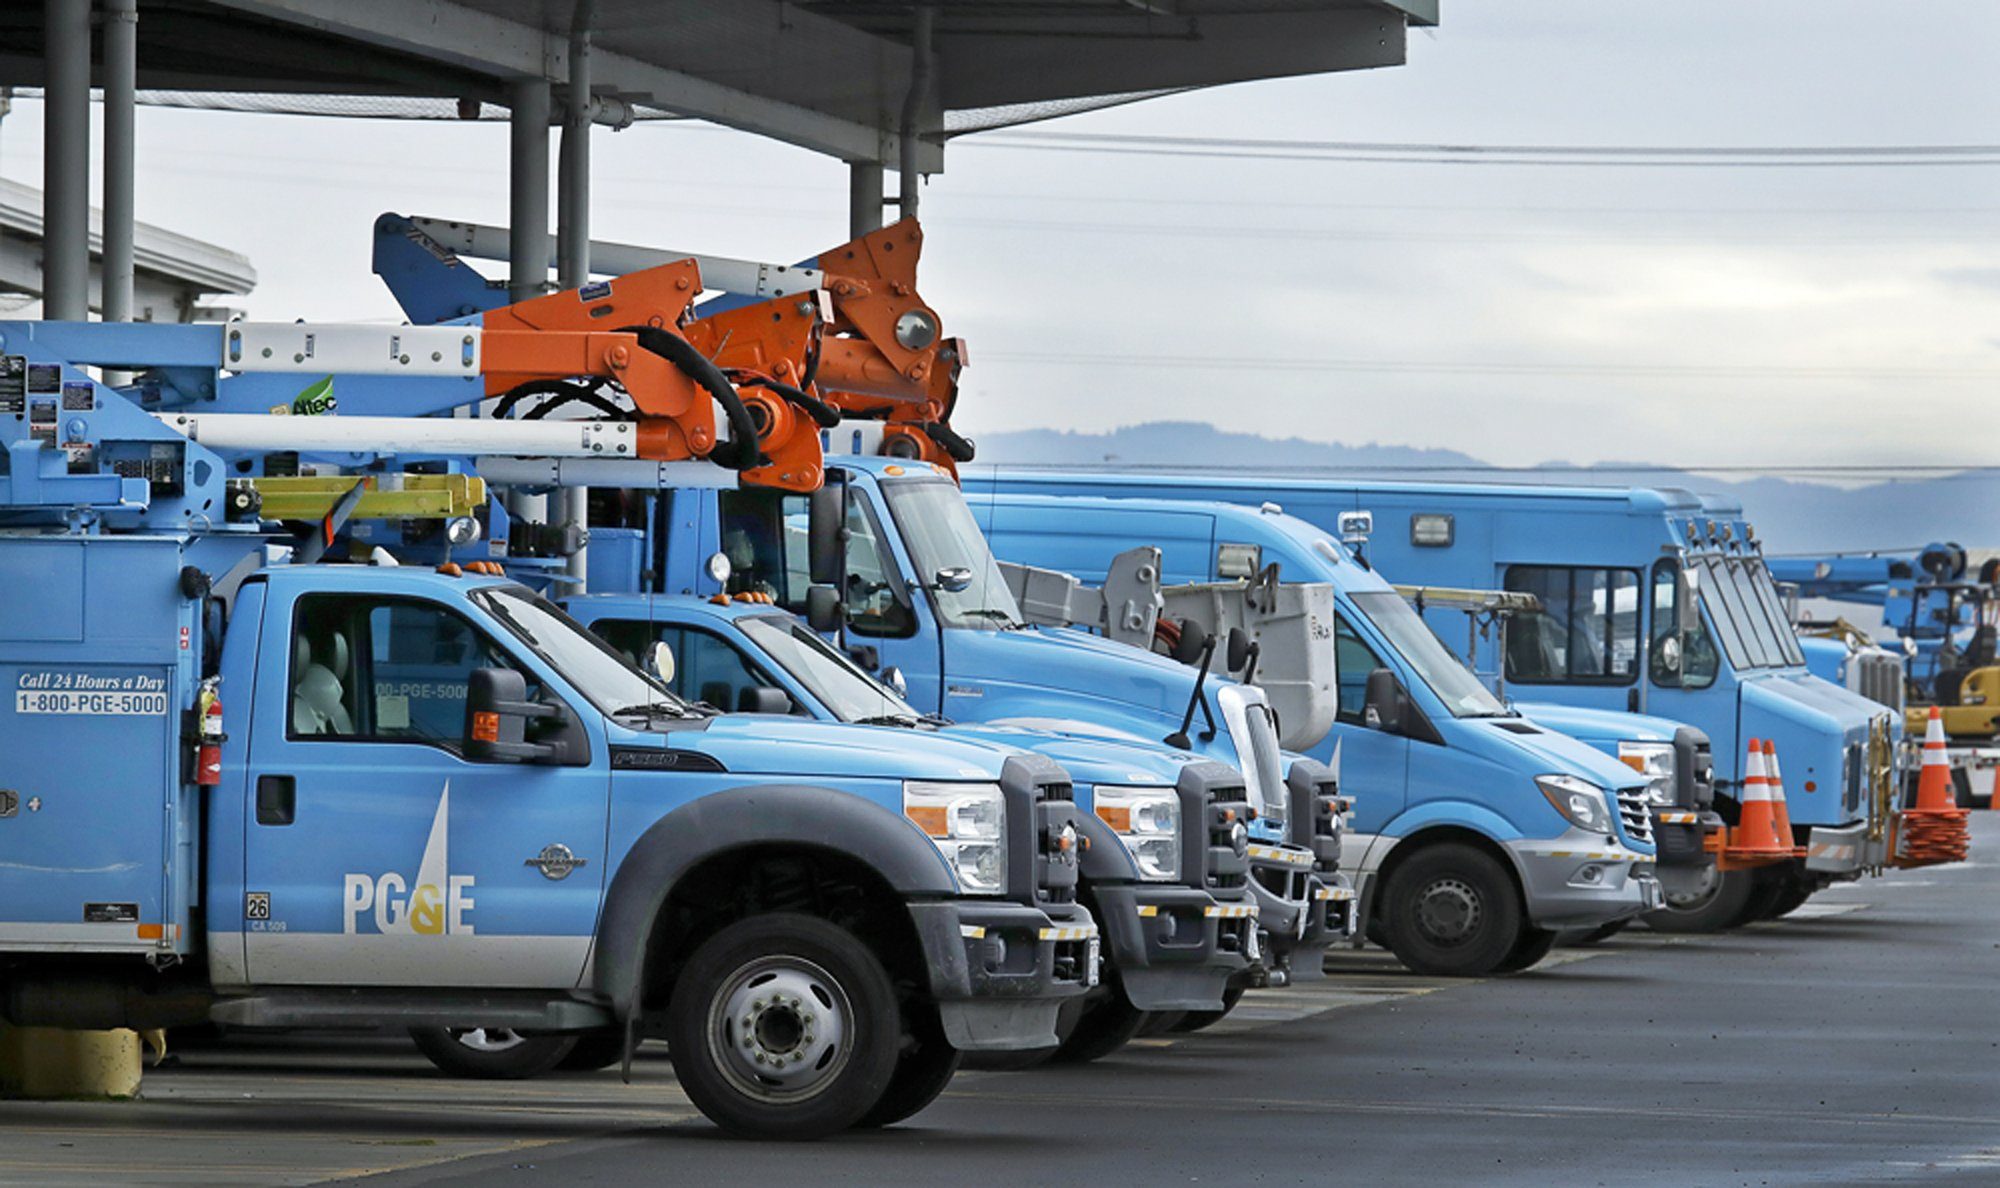 Do PG&E power shutoffs work? It's hard to know, experts say